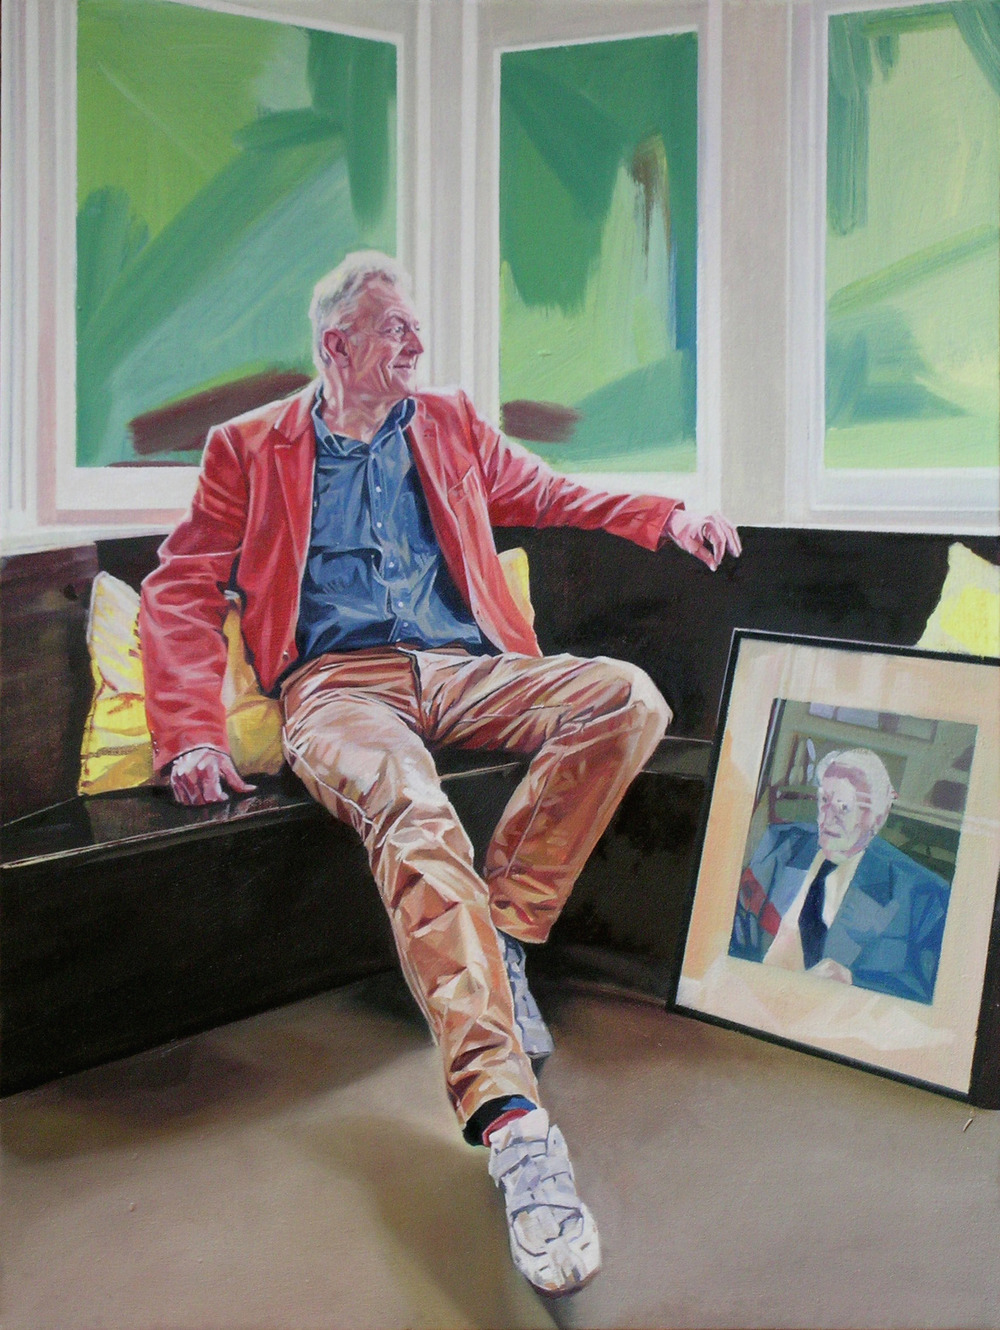 David, 2009, oil on canvas, 24 x 18in.